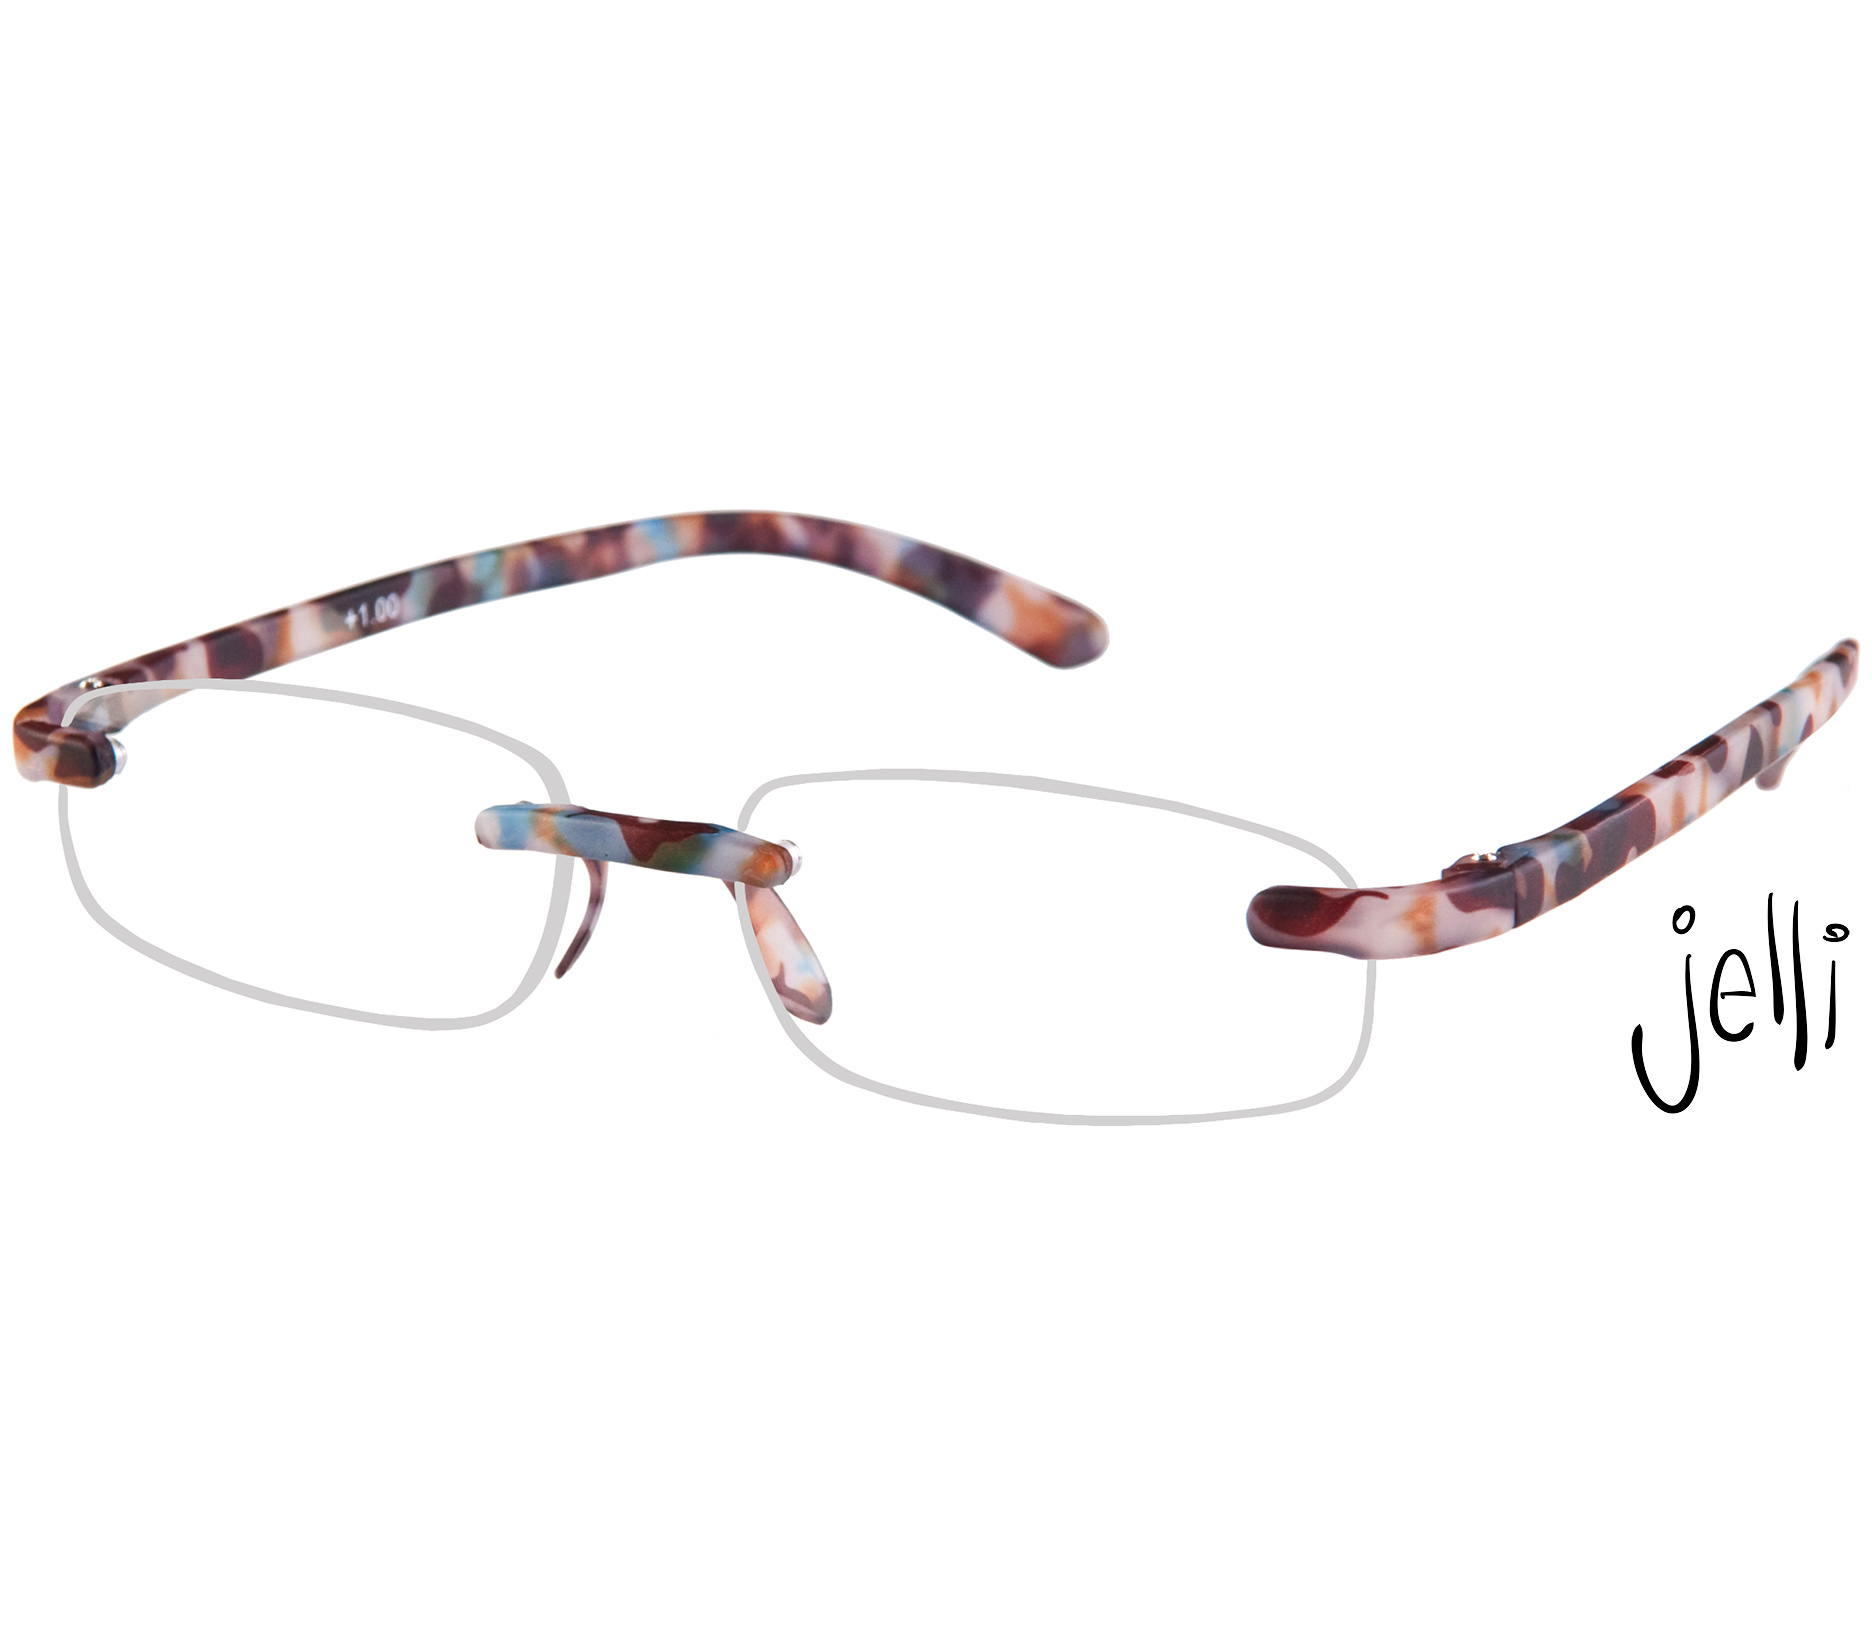 Main Image (Angle) - Jelli (Multi Tortoise) Rimless Reading Glasses